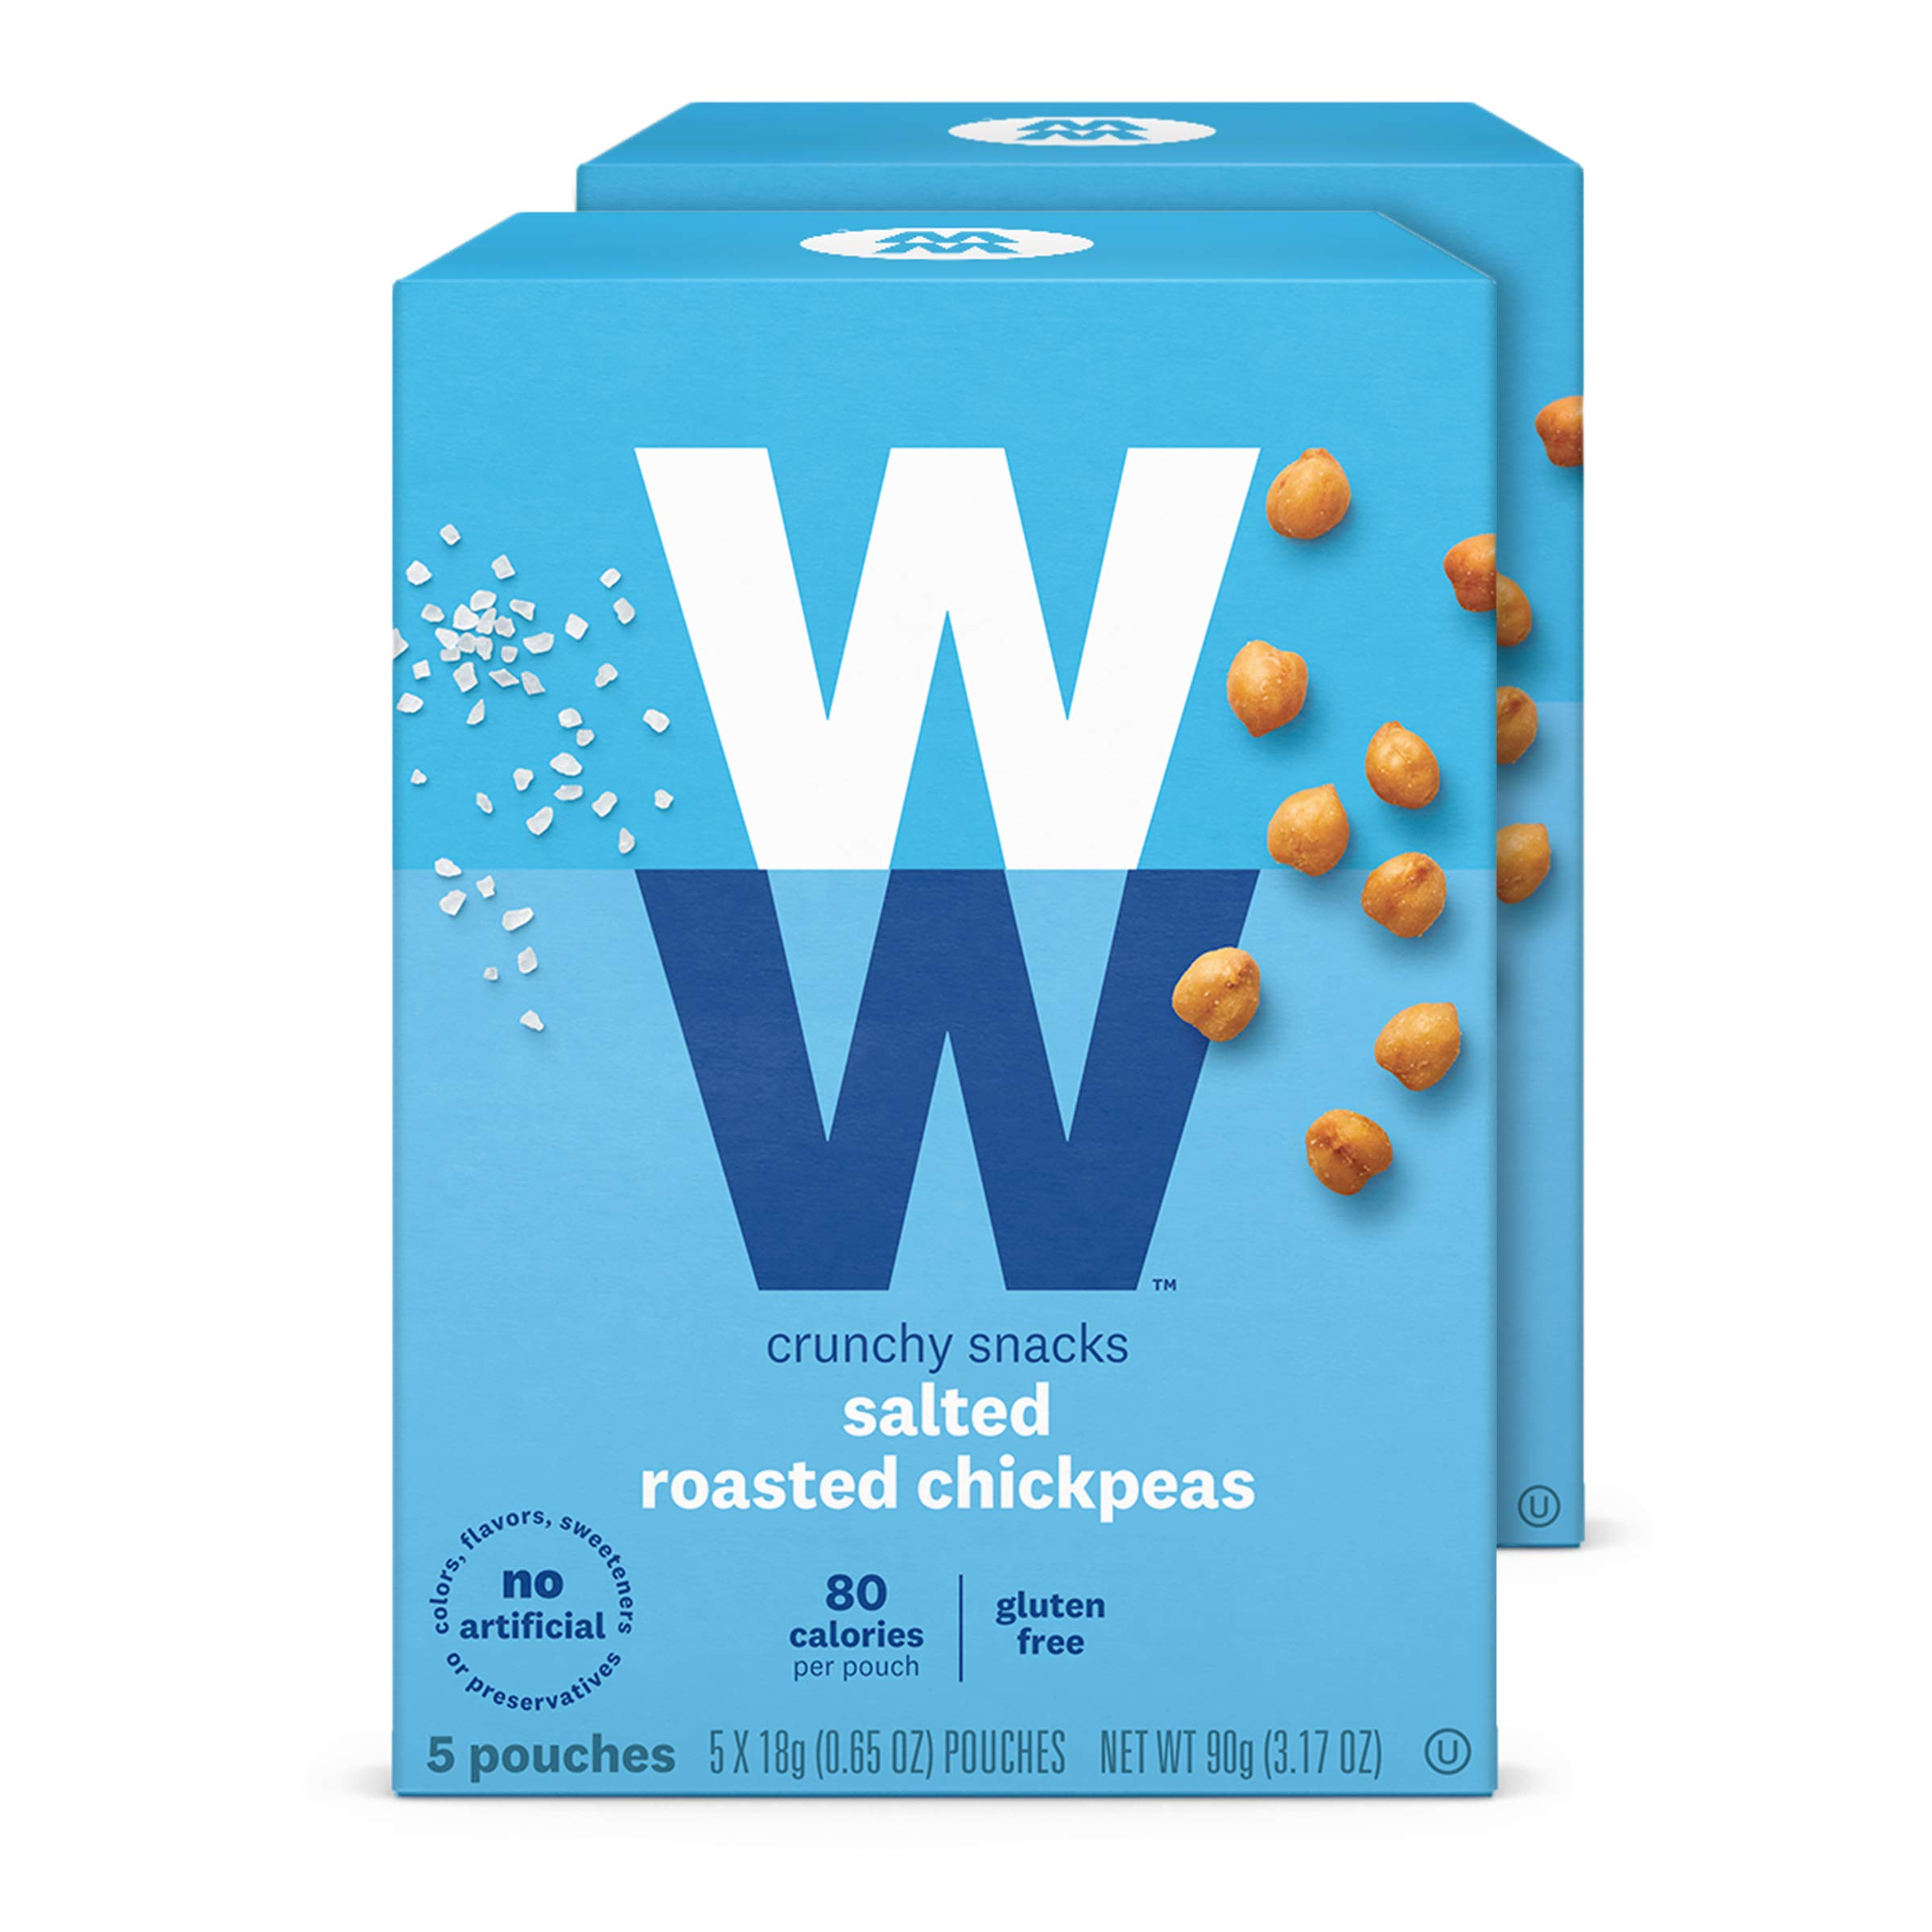 WW Touch of Salt Roasted Chickpeas - Gluten-free, 2 SmartPoints - 2 Boxes (10 Count Total) - Weight Watchers Reimagined